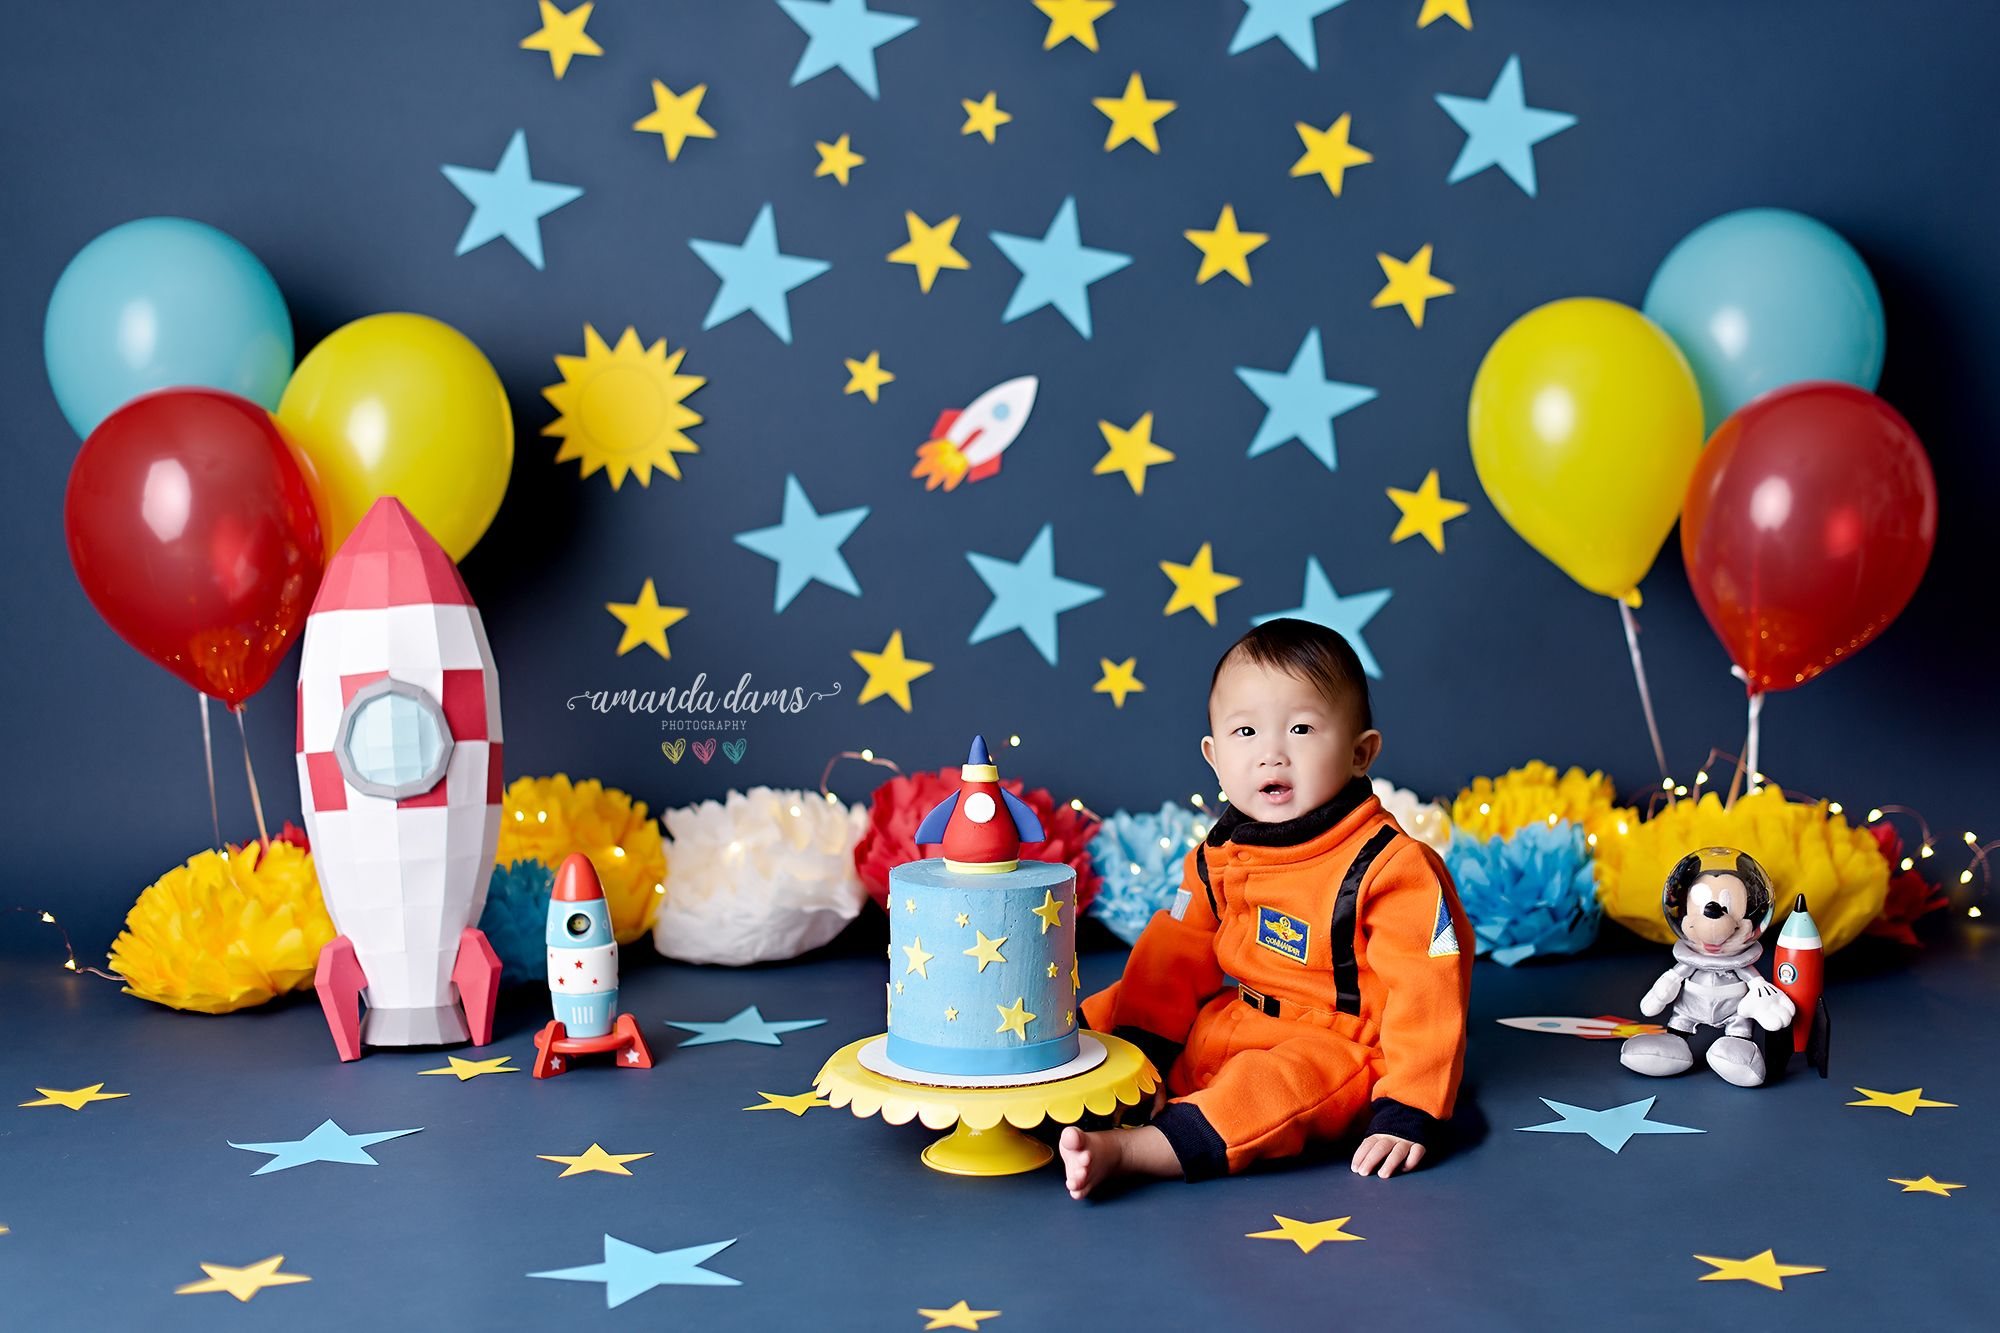 Outer Space Astronaut Cake Smash Inspiration Ideas